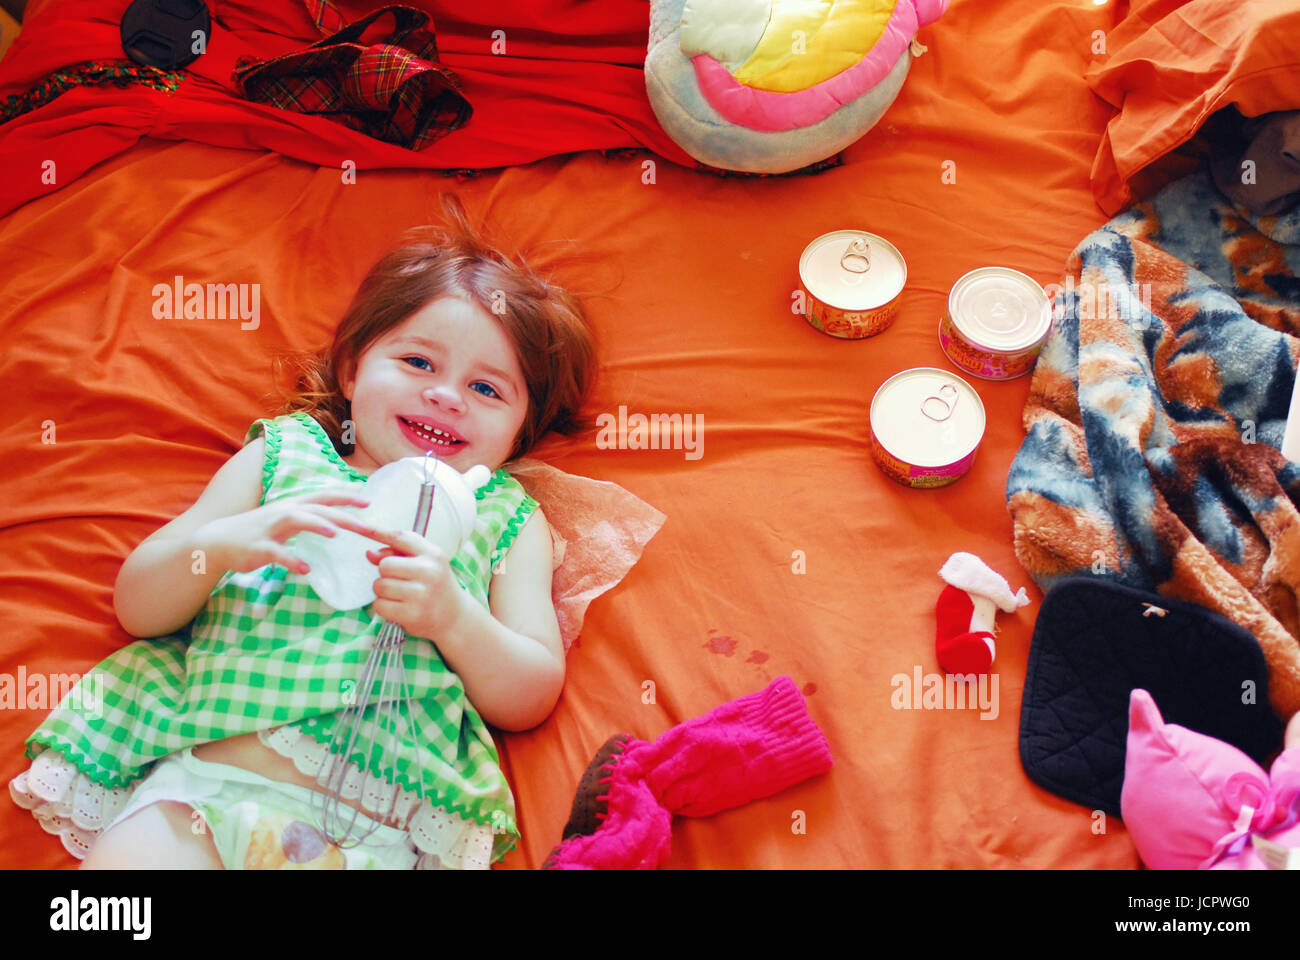 toddler lying on messy bed with assorted objects - Stock Image